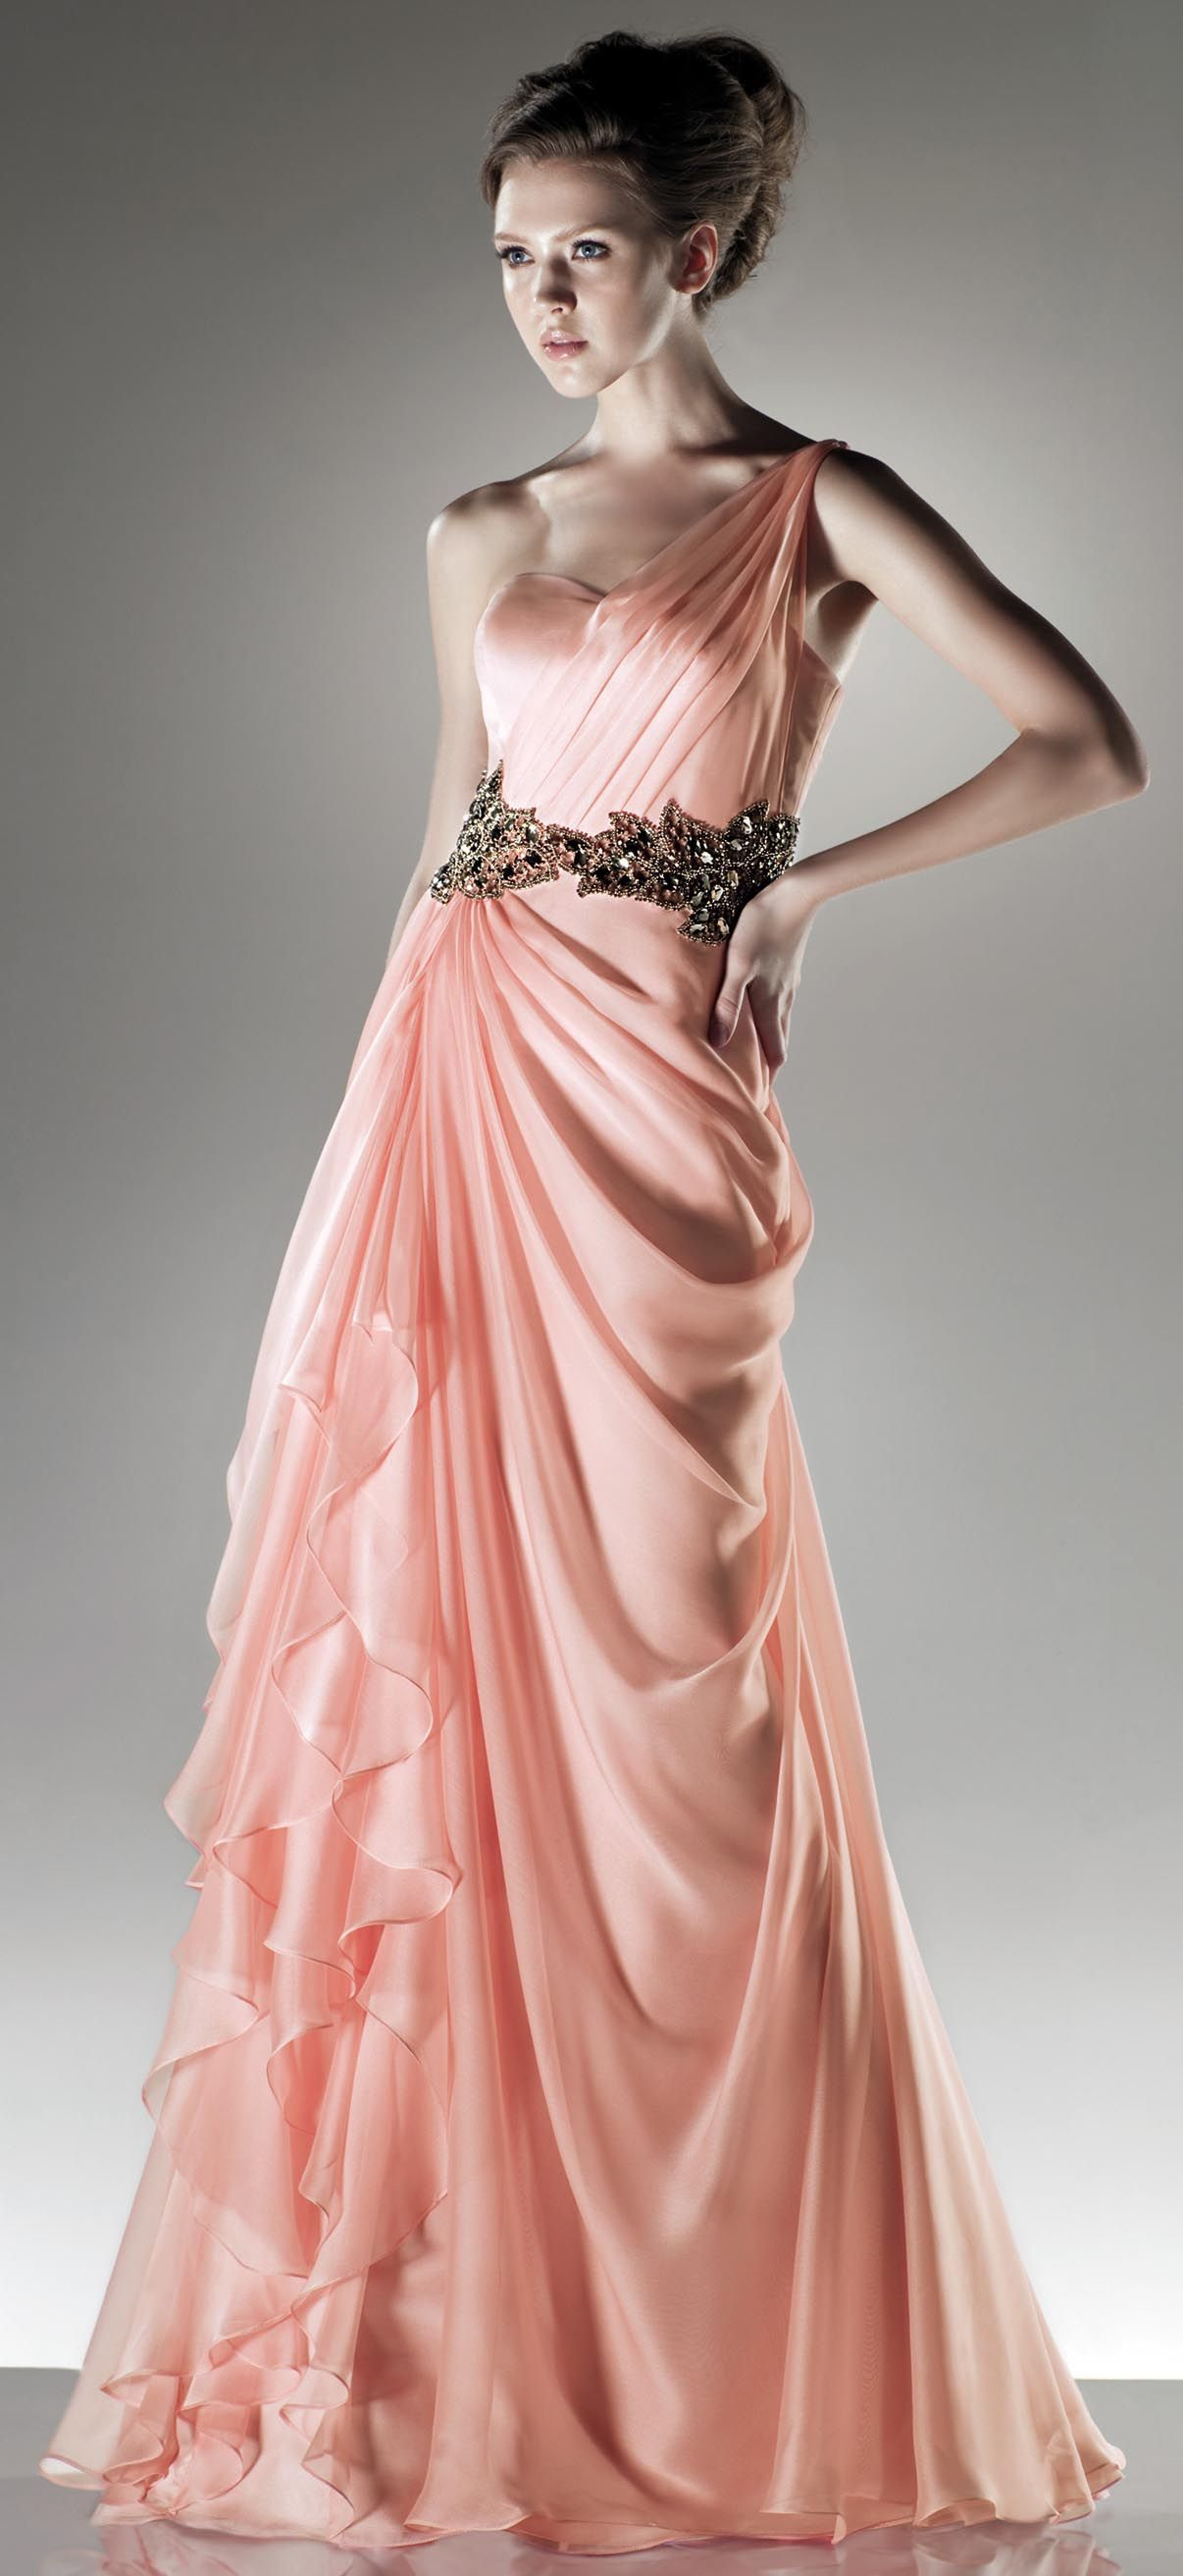 LOVE THIS DRESS! | Sparkles! | Pinterest | Chiffon gown, Gowns and ...